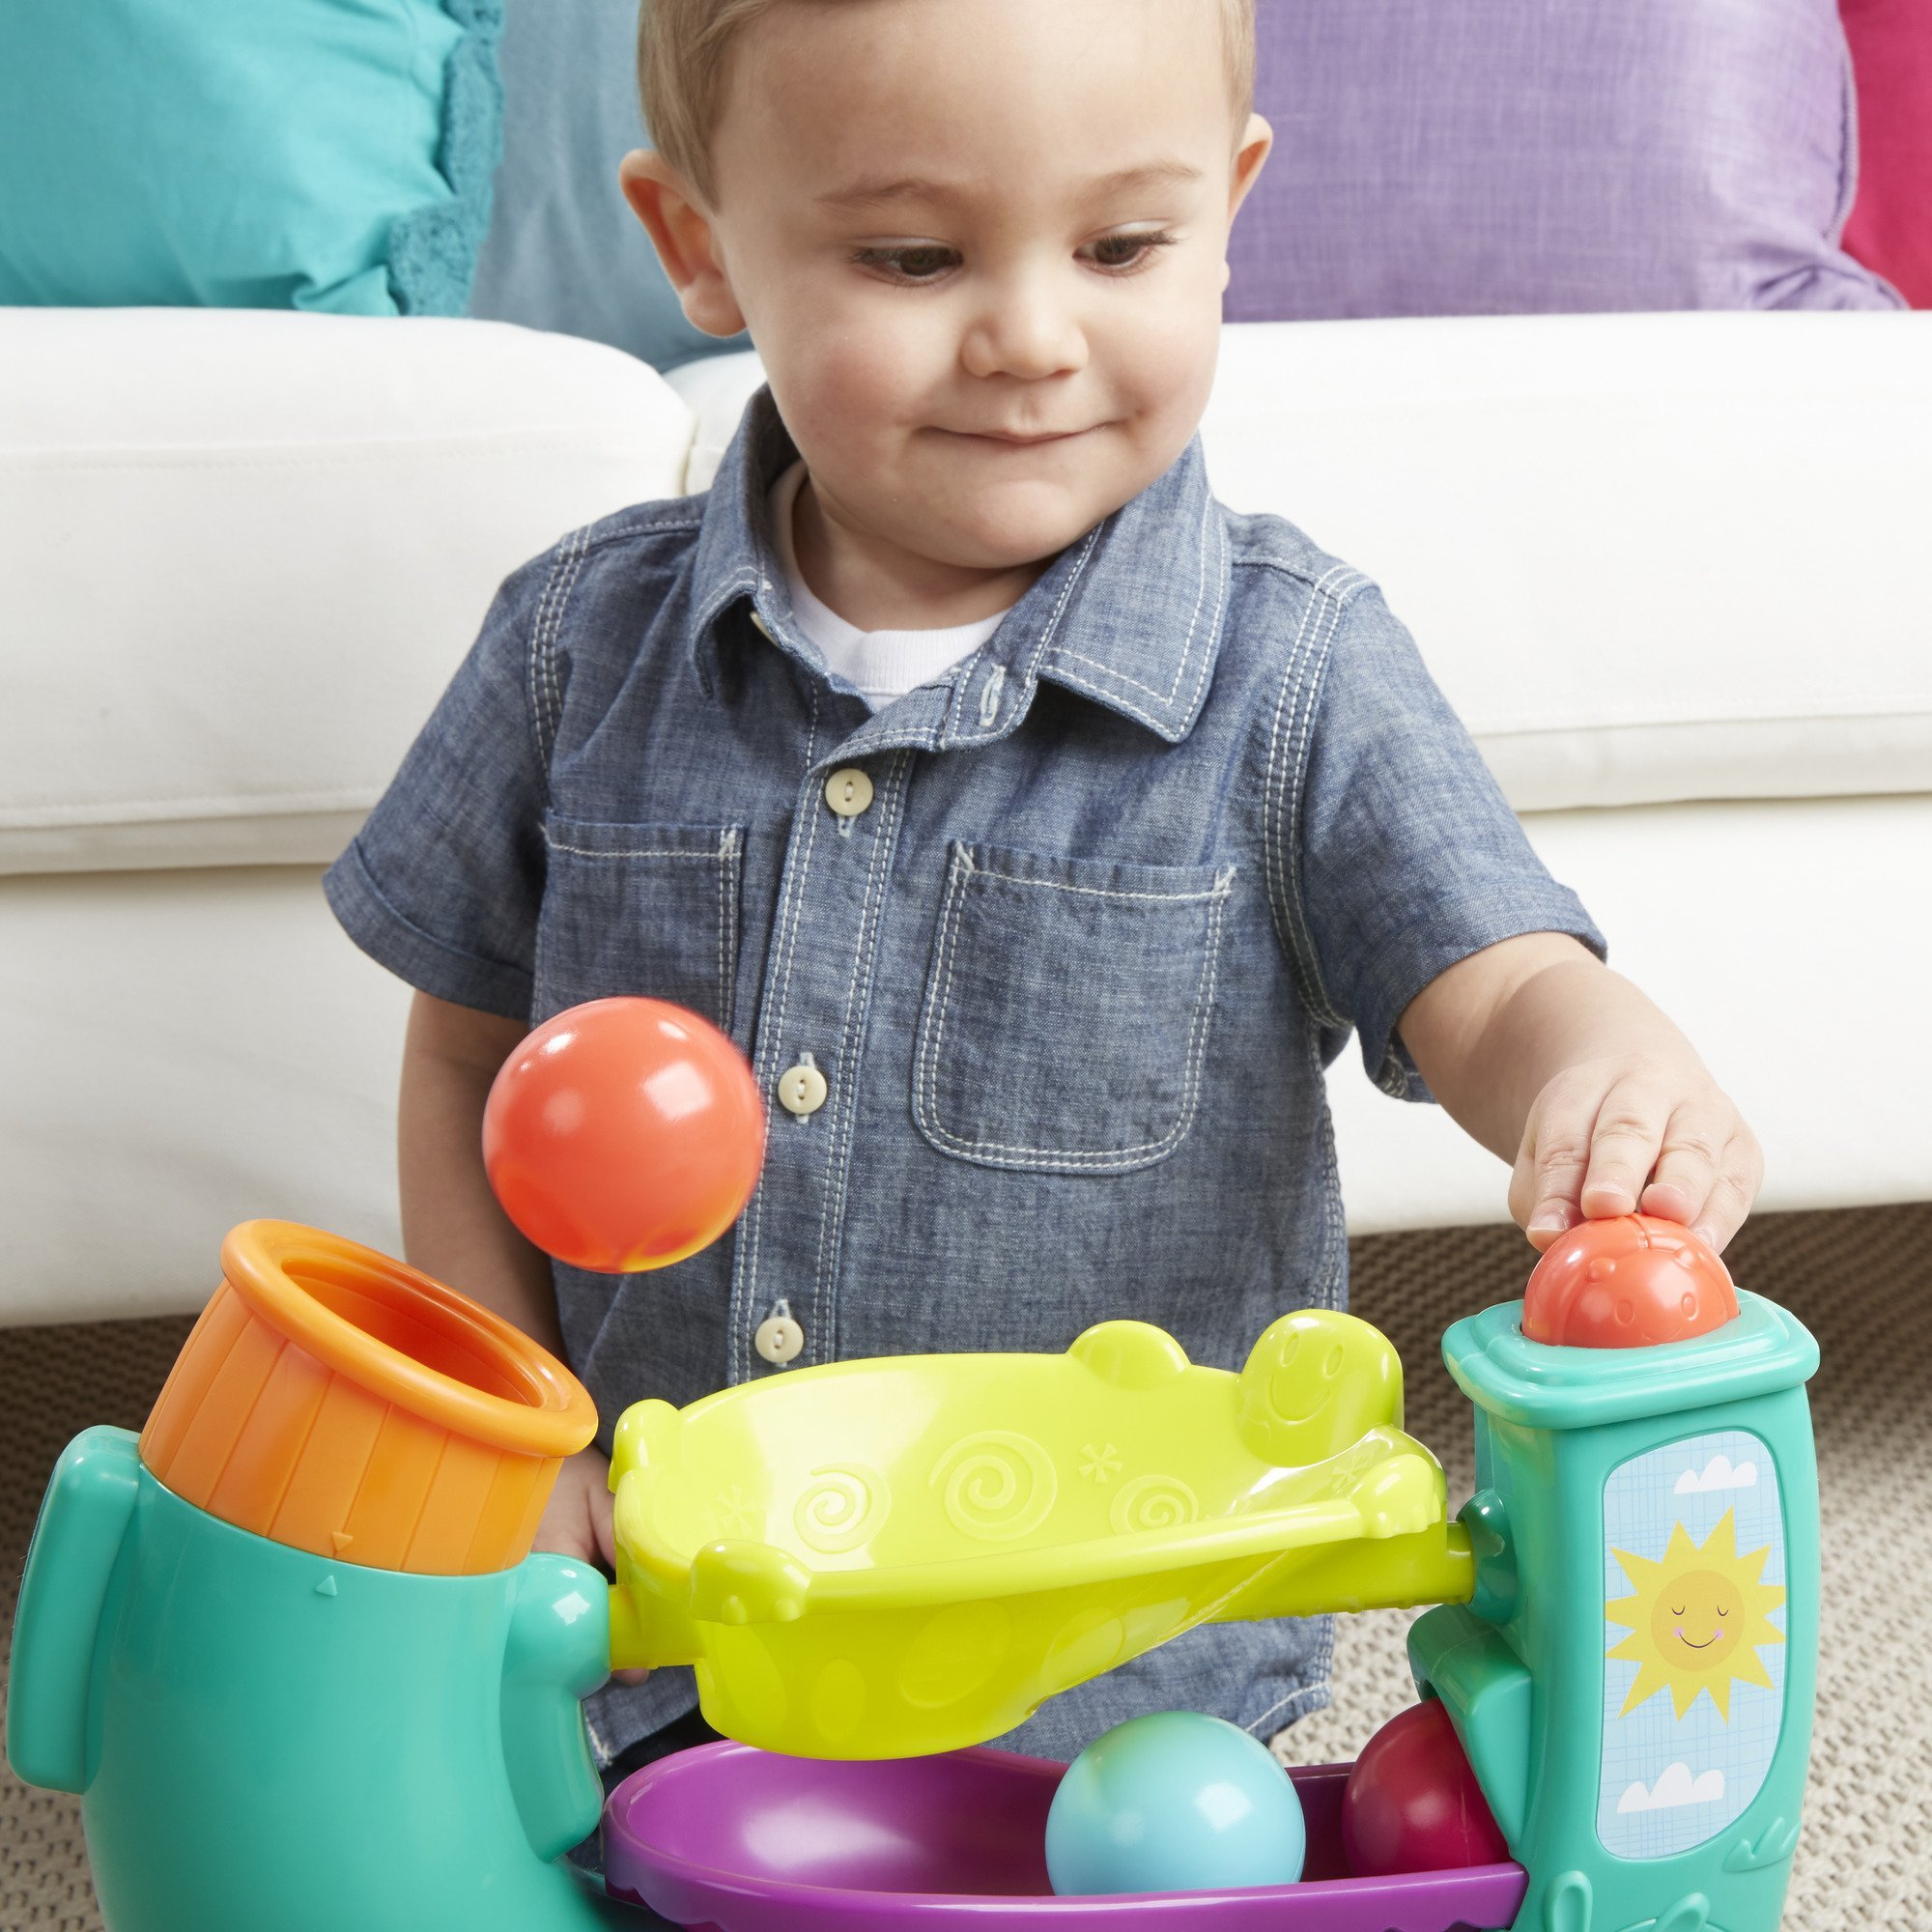 Playskool Chase n Go Ball Popper (Teal), Ages 9 Months and up by Playskool (Image #12)